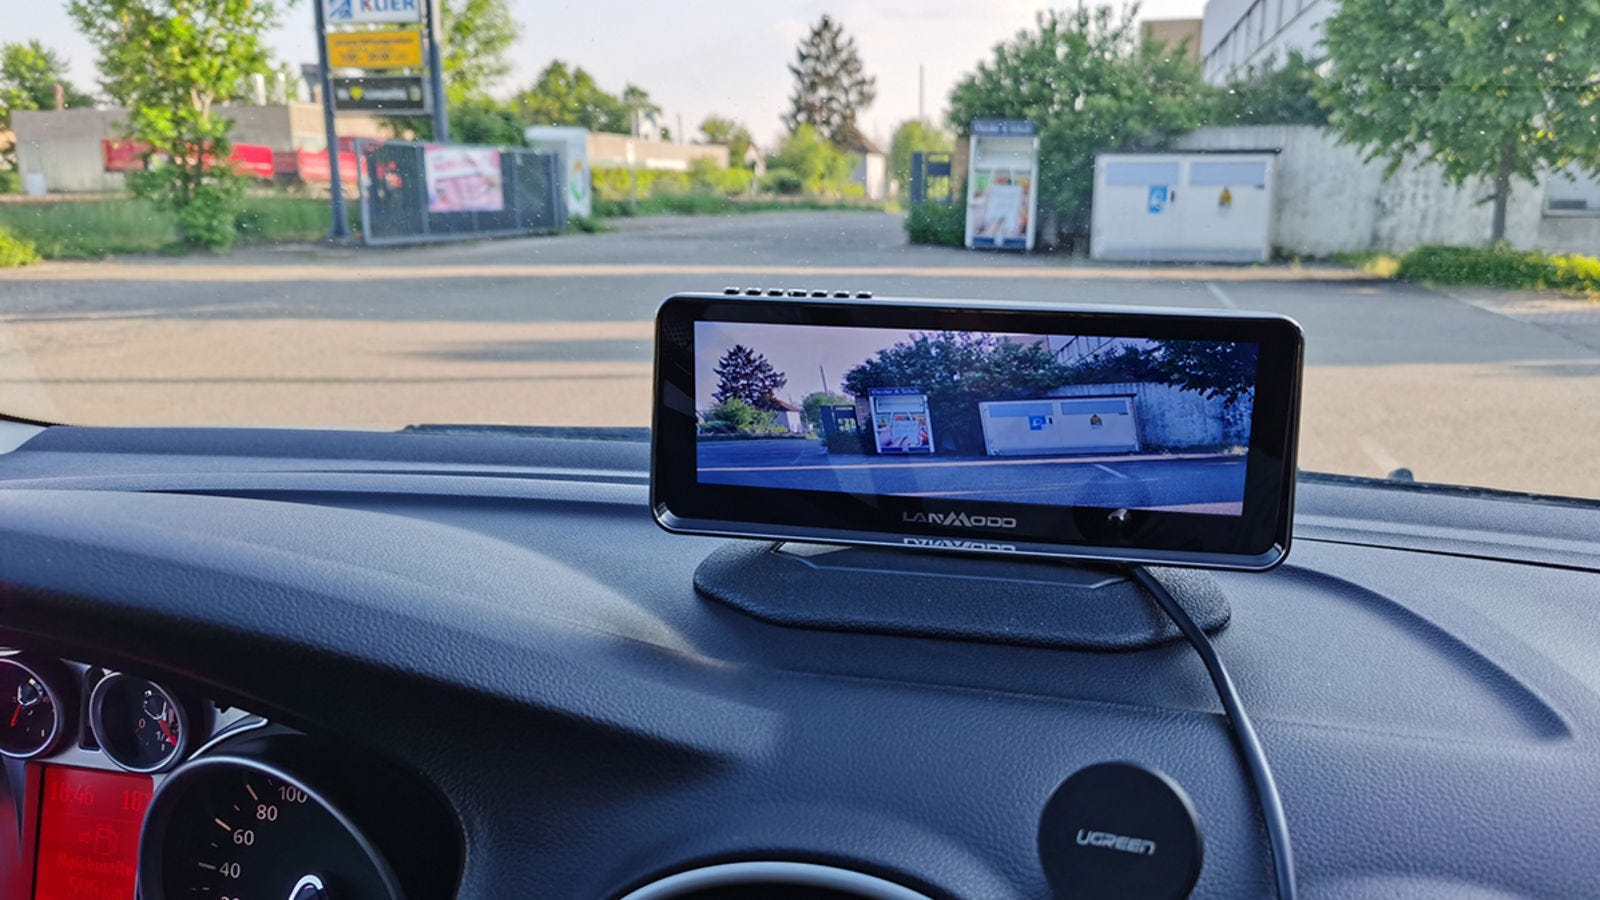 The perspective offered by the screen isn't very useful if you want to drive using only the screen. Don't trust in a tiny screen when you have a big view courtesy of your windshield.